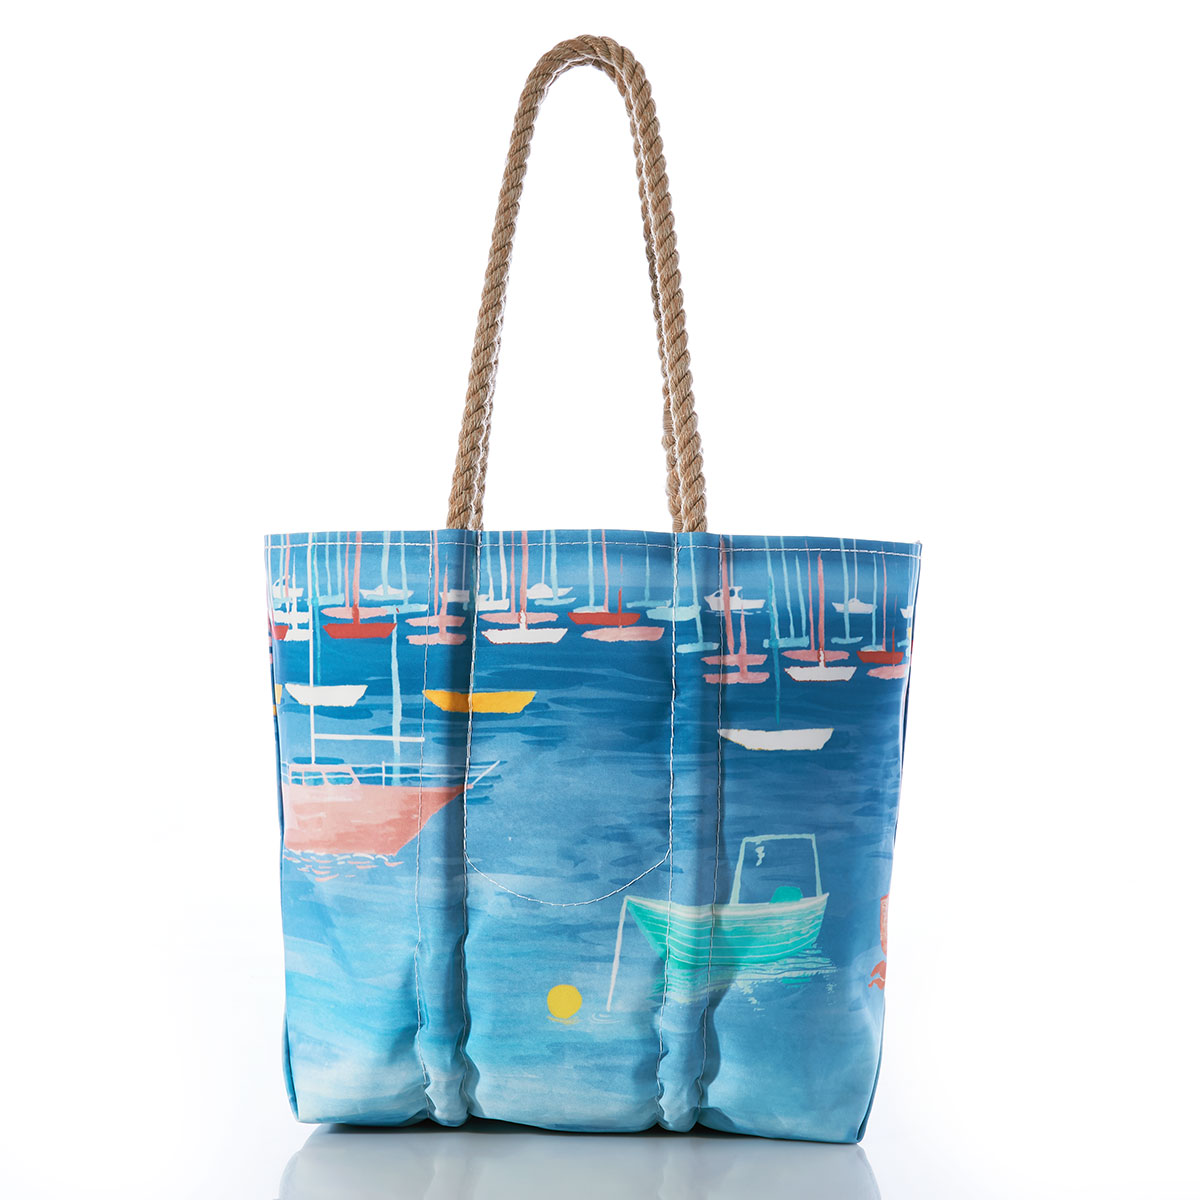 colorful sailboats and lobster boats bob in a blue ocean on a recycled sail cloth tote with hemp rope handles